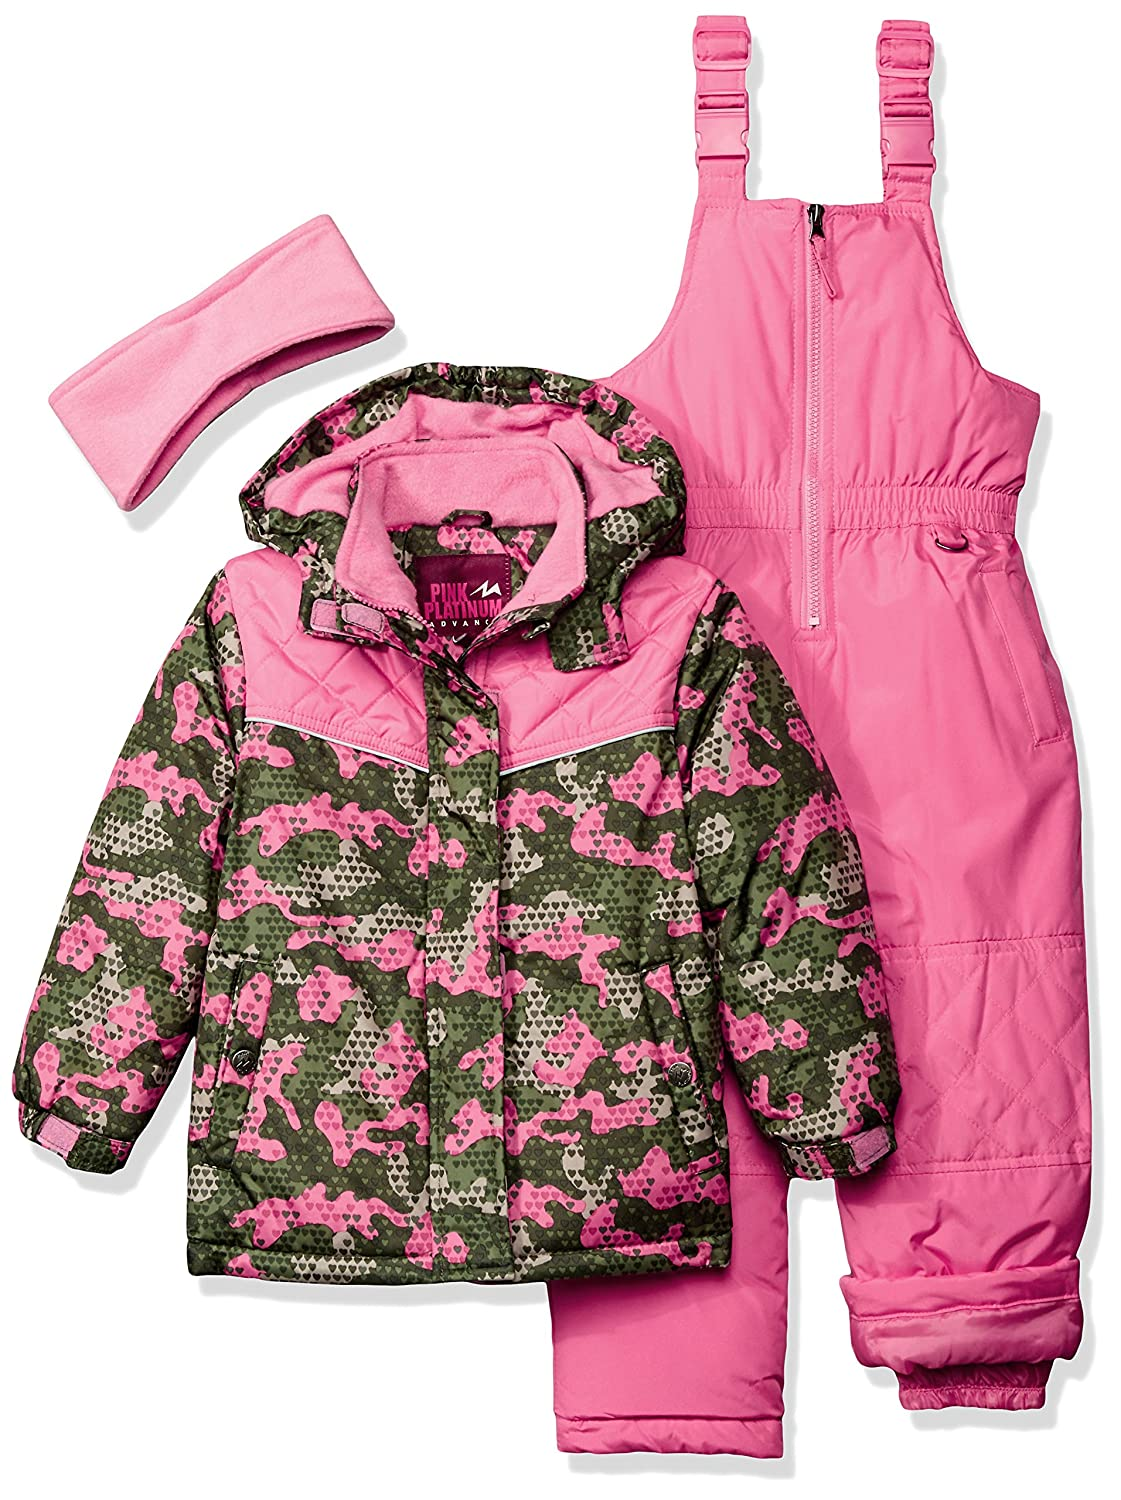 platinum quilted ip suit ski snowboard bib jacket snowsuit little girls com pink walmart